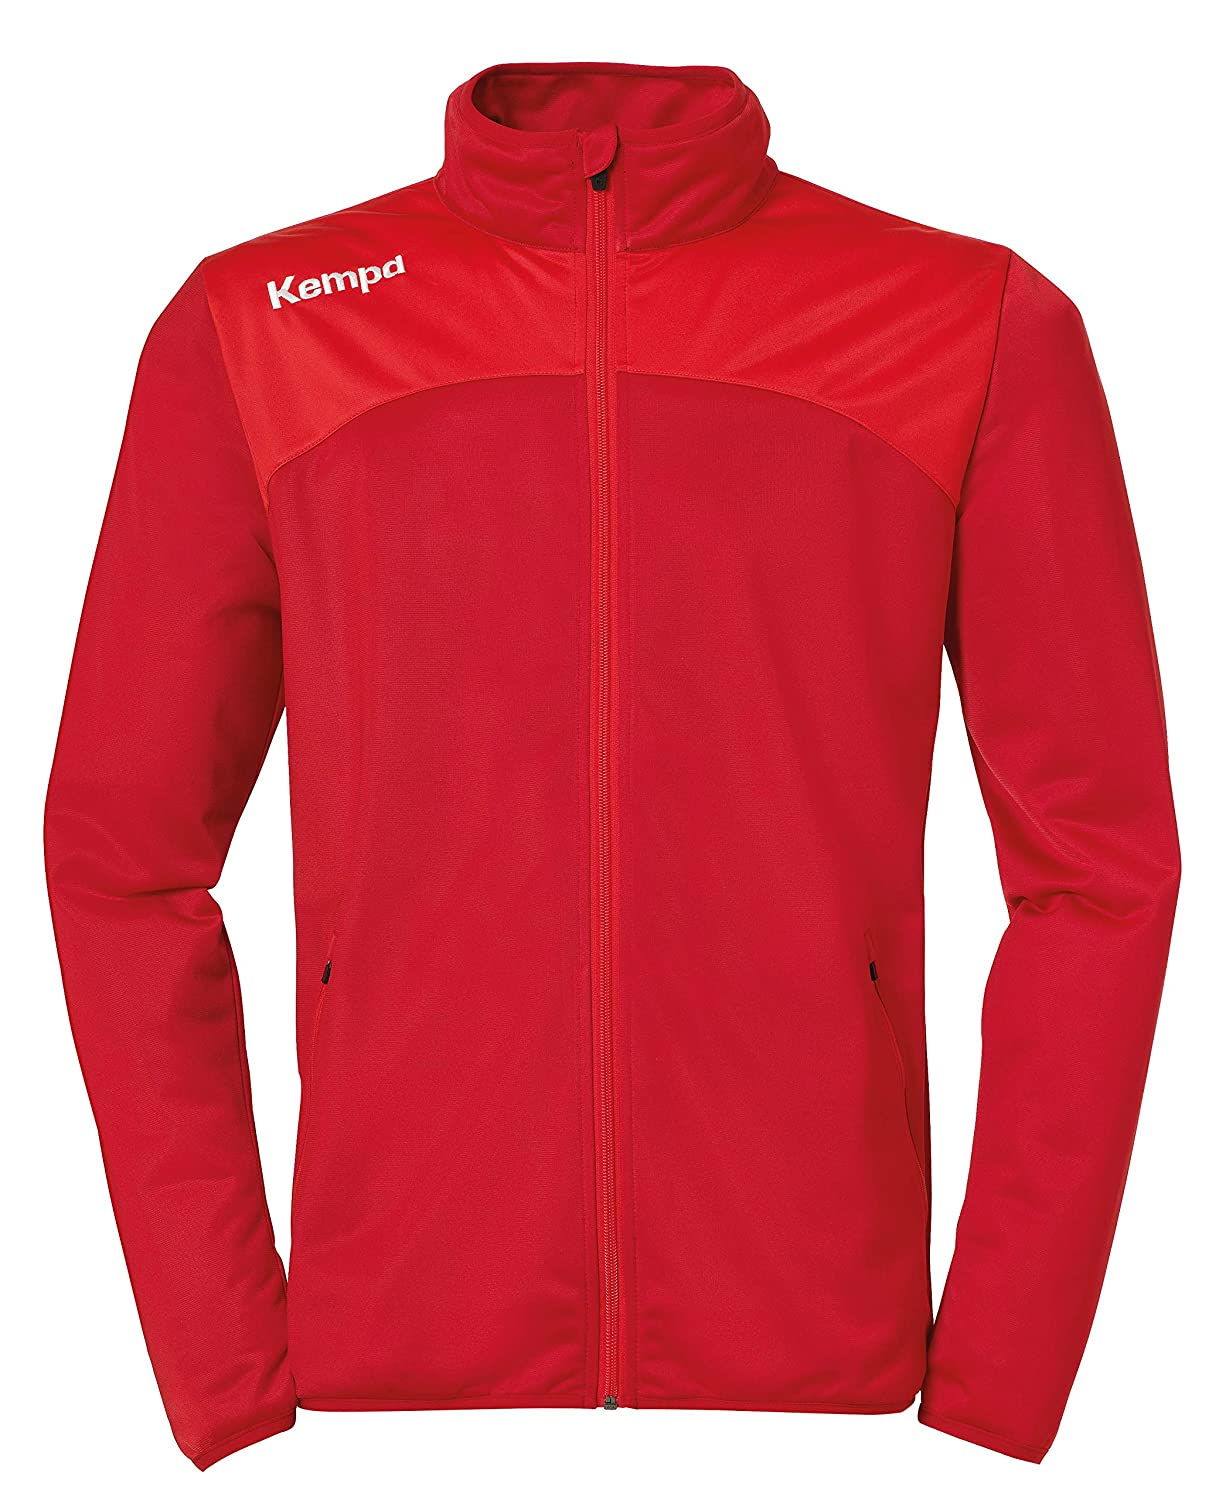 Kempa Emotion 2.0 Training Top Ropa de Abrigo Beb/é-Ni/ños